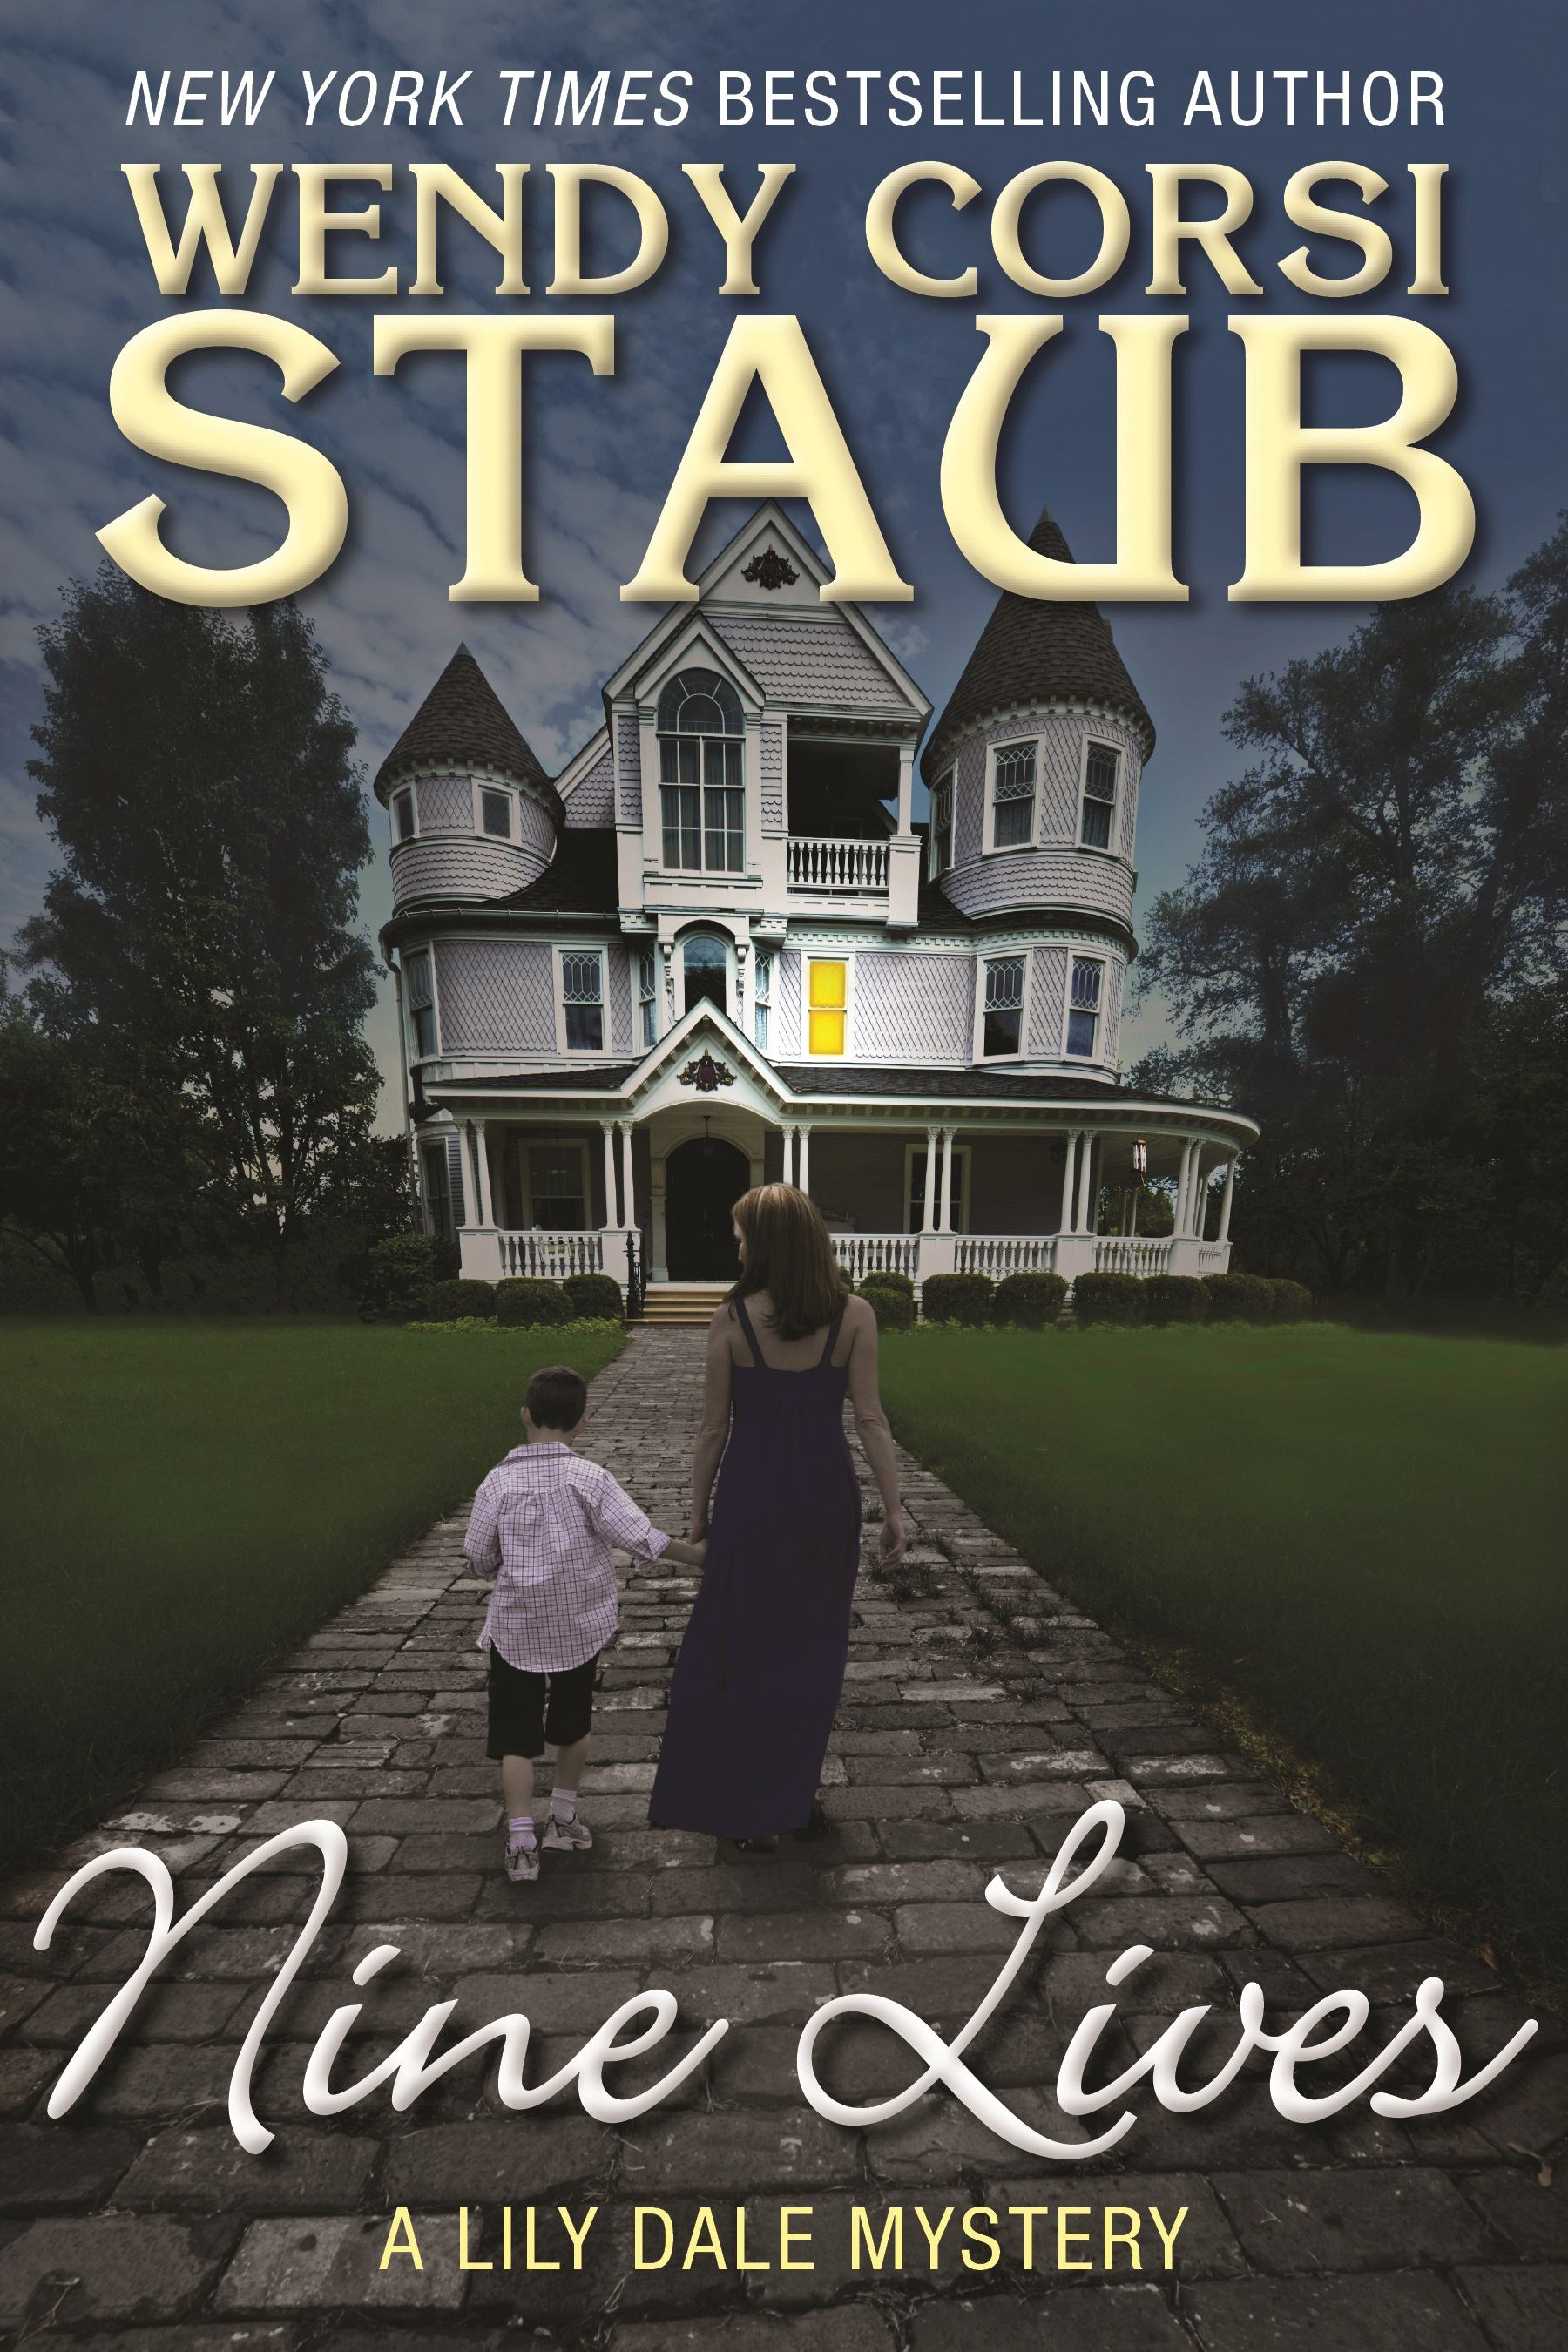 """Nine Lives: A Lily Dale Mystery"" by Wendy Corsi Staub c.2015, Crooked Lane Books $24.99 / $34.50 Canada 288 pages"